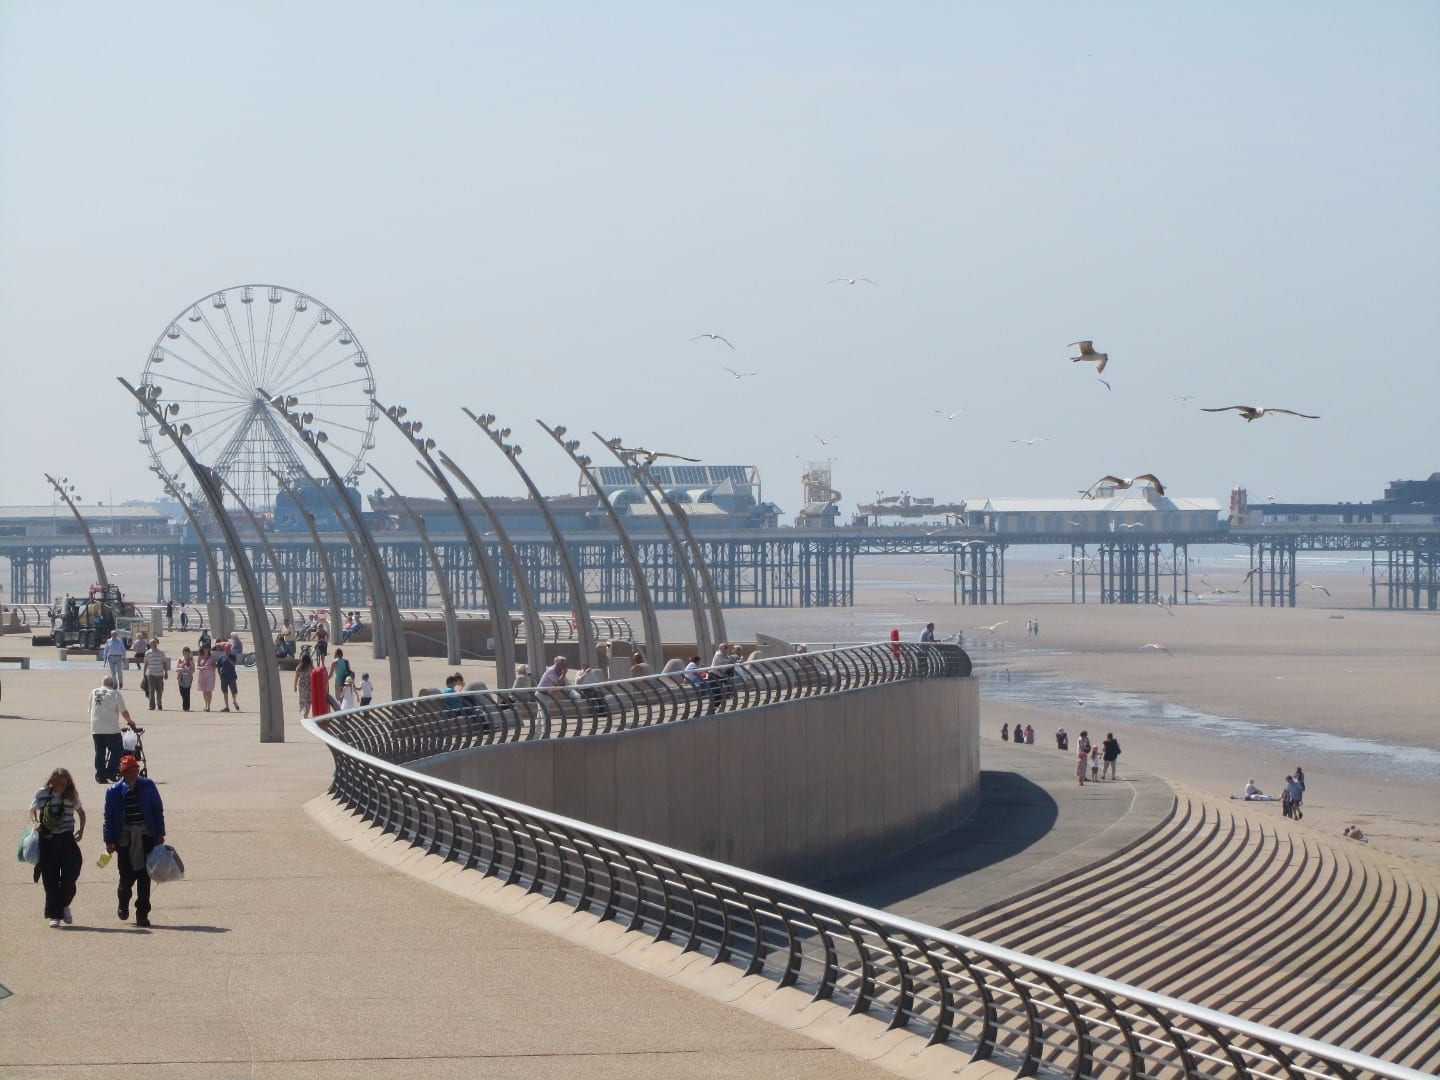 Blackpool seafront, looking towards Central Pier with North Pier behind you